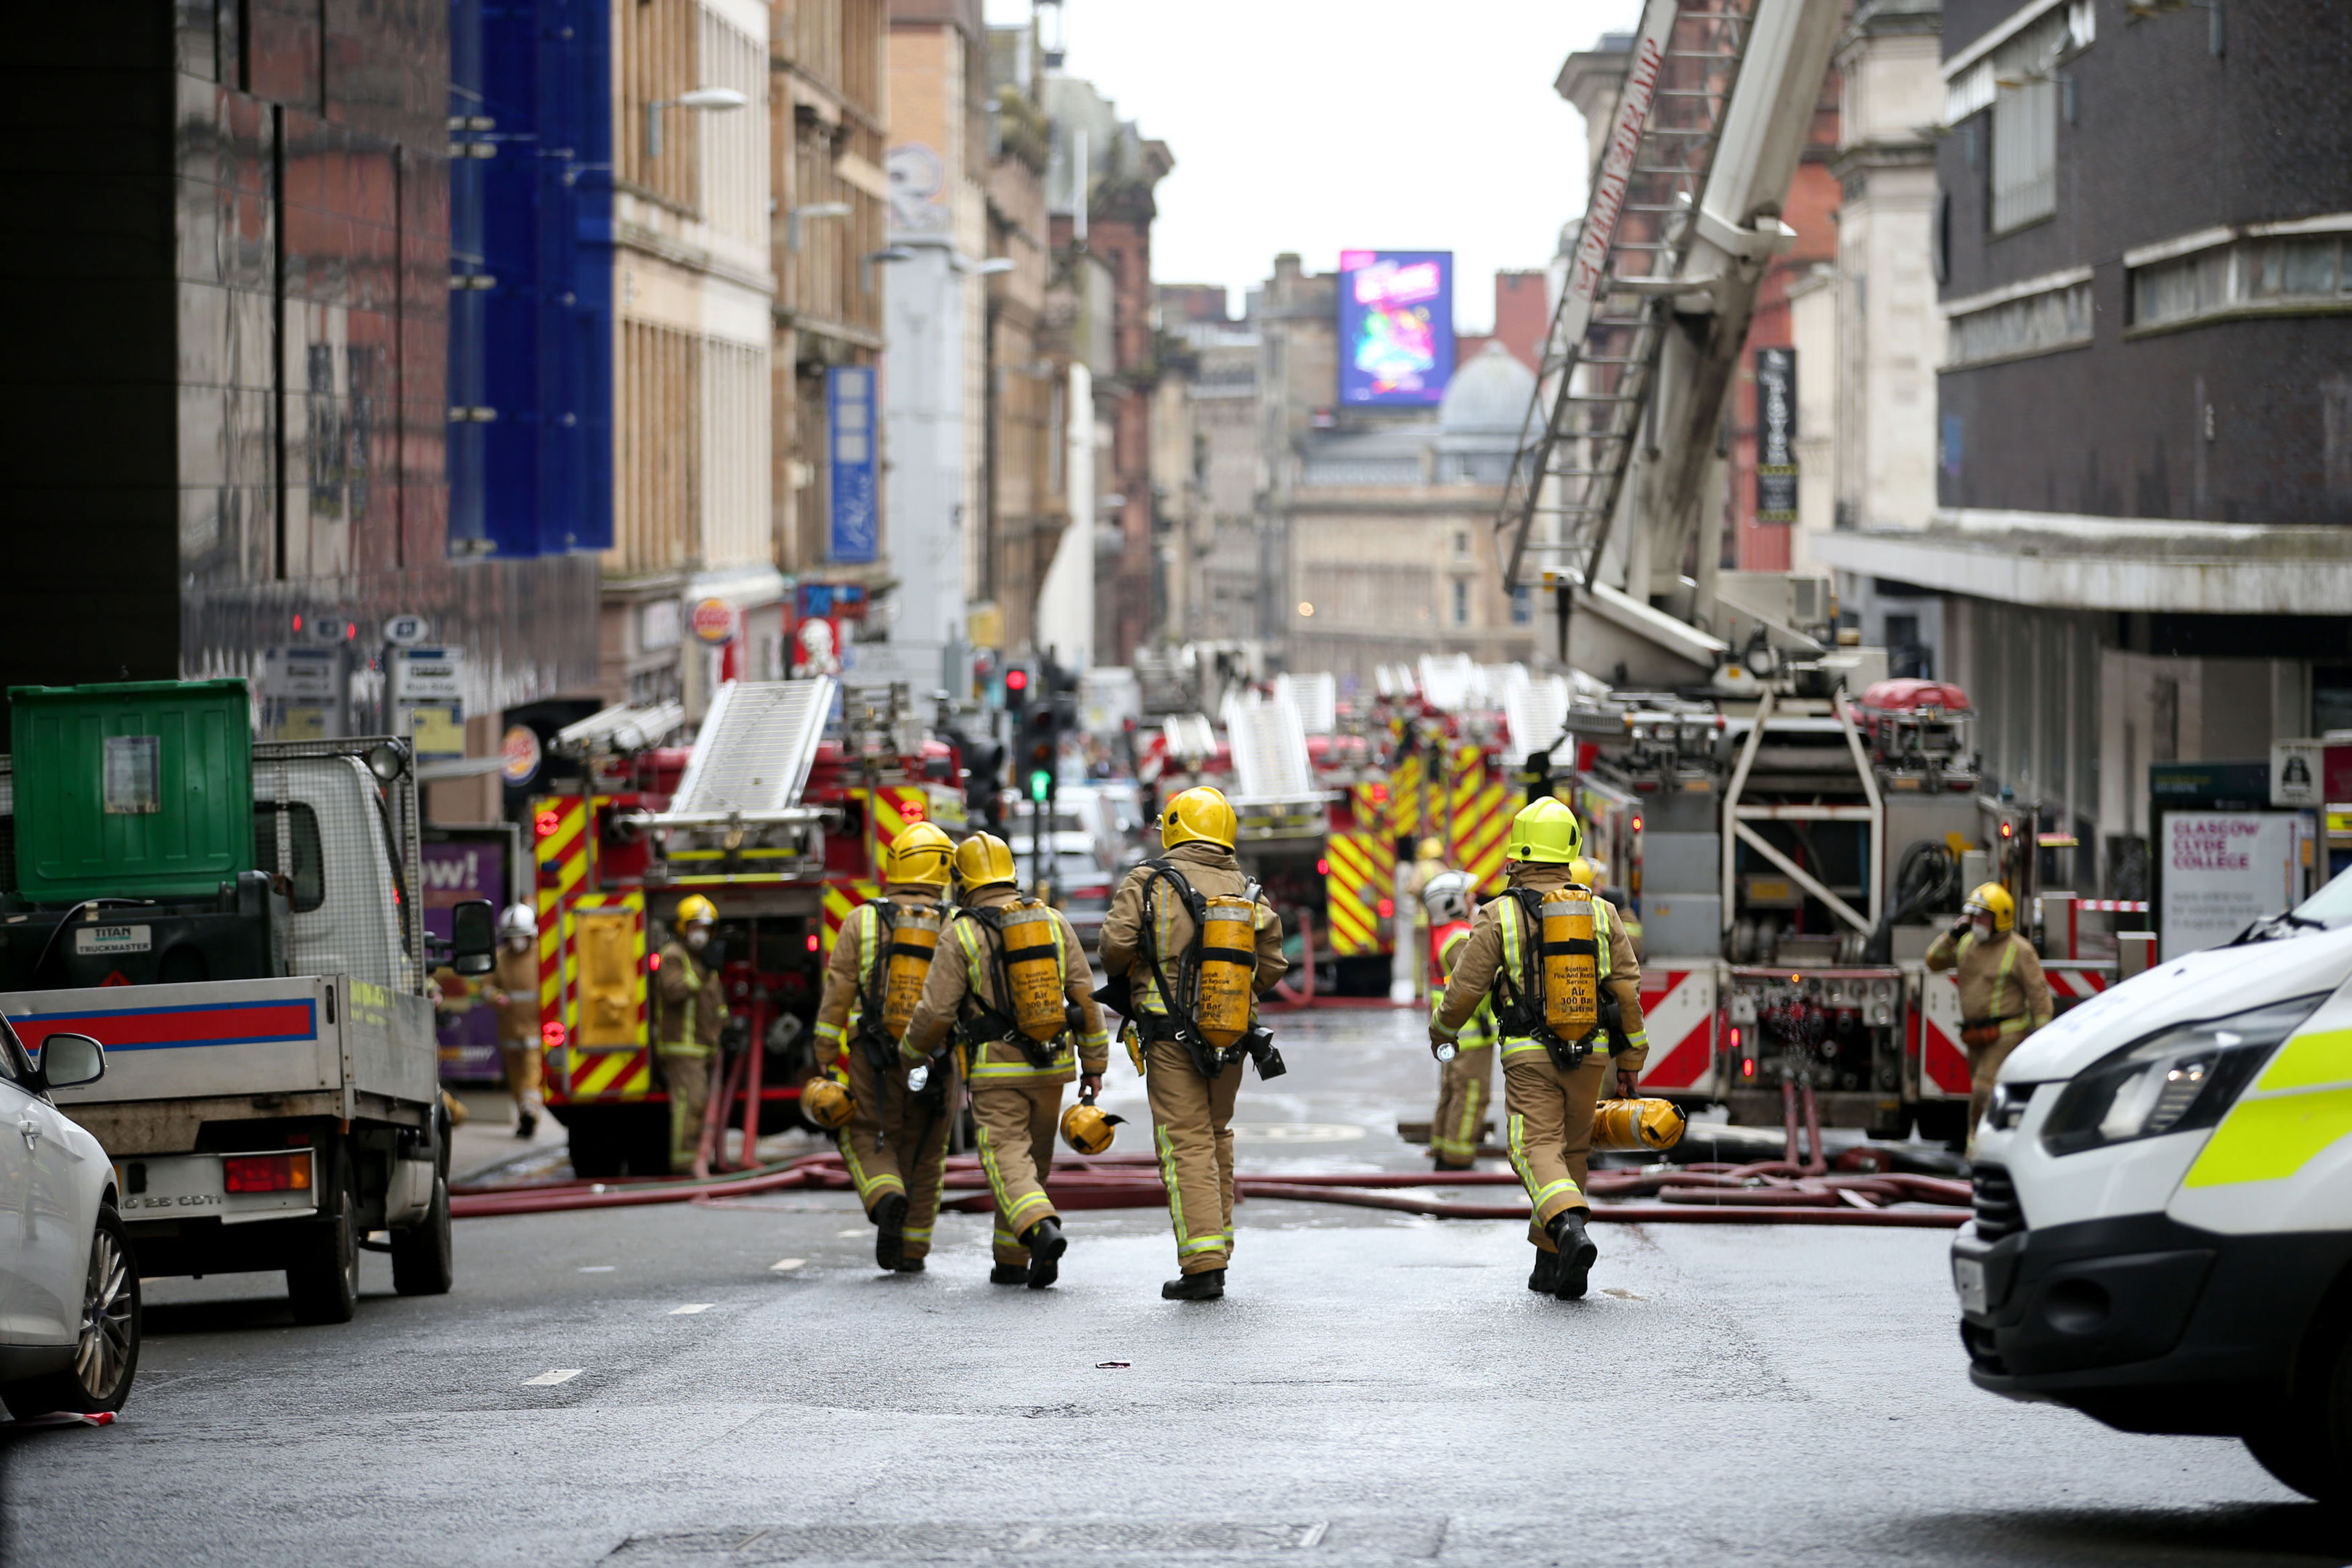 The scene in Glasgow city centre where firefighters tackled a large blaze on Sauchiehall Street (Jane Barlow/PA Wire)